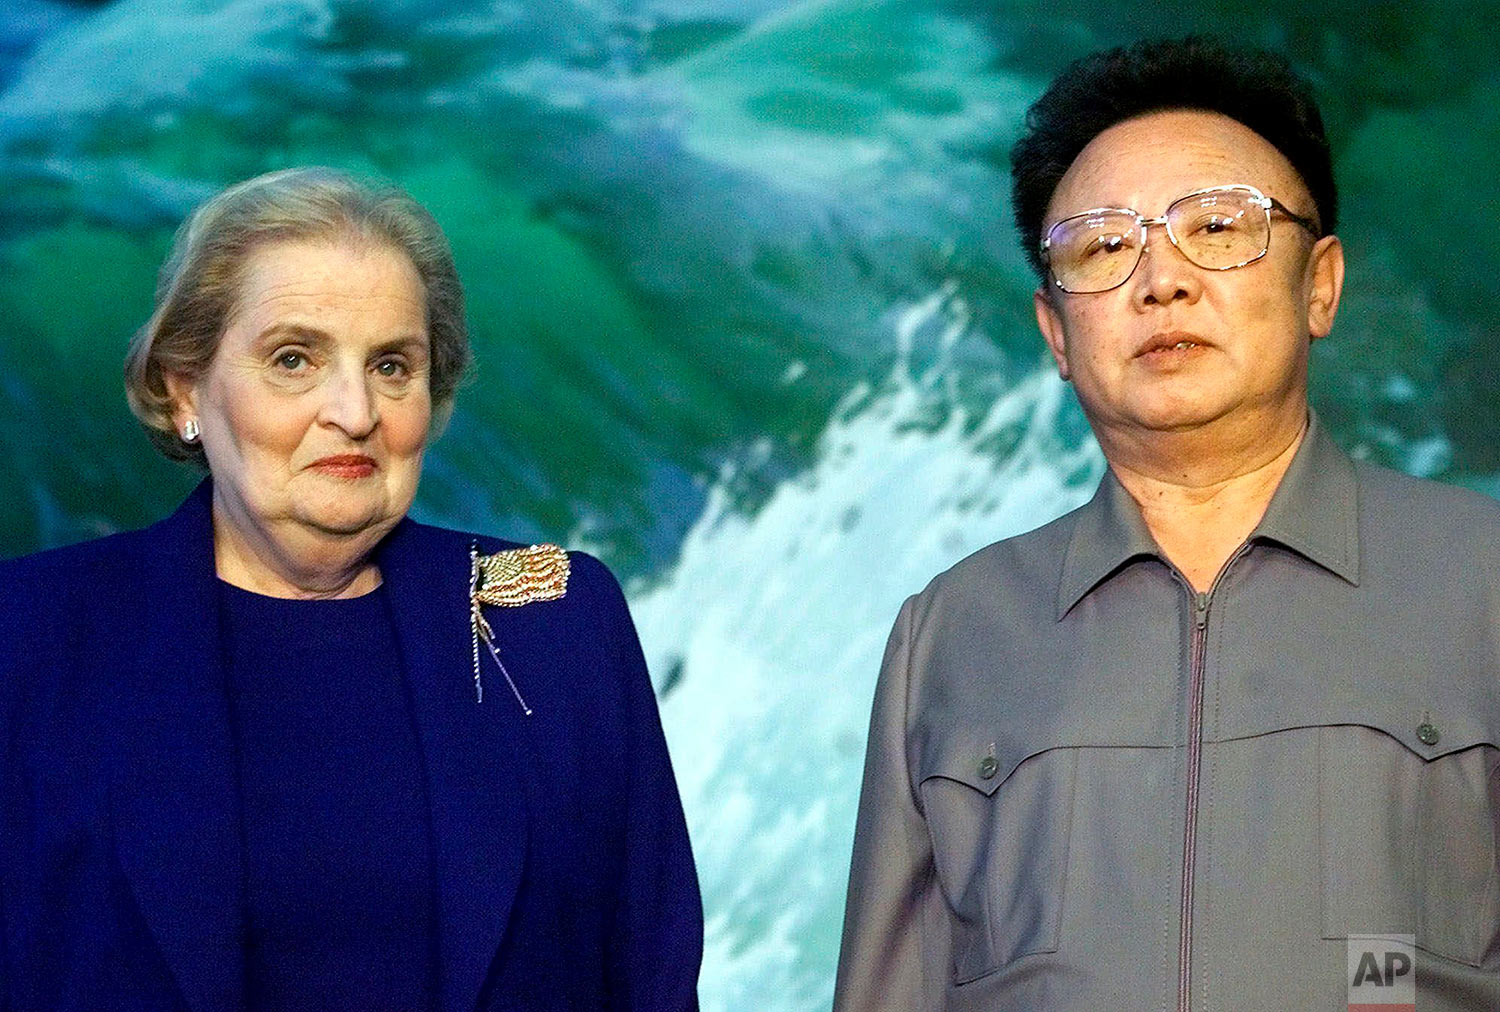 U.S. Secretary of State Madeleine Albright and North Korean Leader Kim Jong Il stand side-by-side at the Pae Kha Hawon Guest House in Pyongyang, North Korea, on Oct. 23, 2000. (AP Photo/David Guttenfelder, Pool)